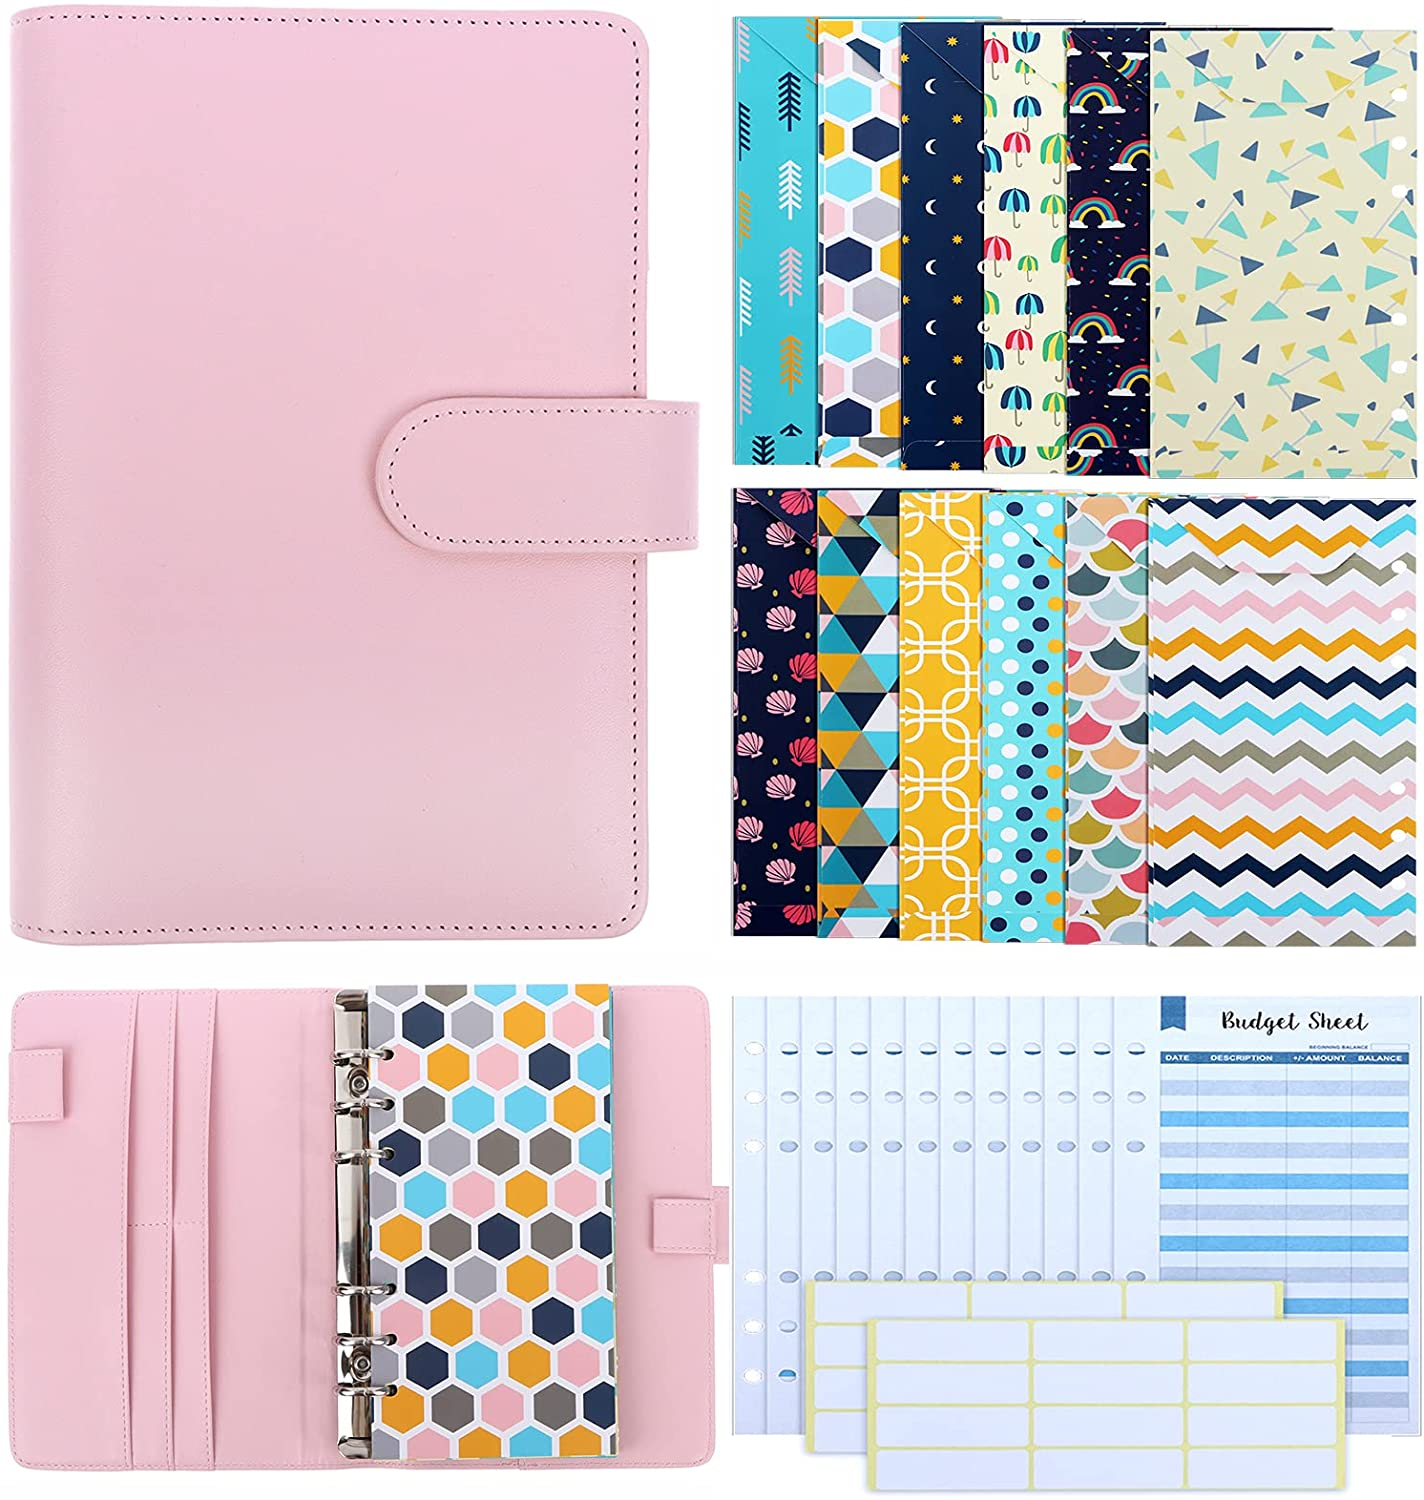 28 Pieces PU Leather Budget Planner Organizer Binder Cash Envelope System with 12 Money Envelope and Expense Budget Sheets